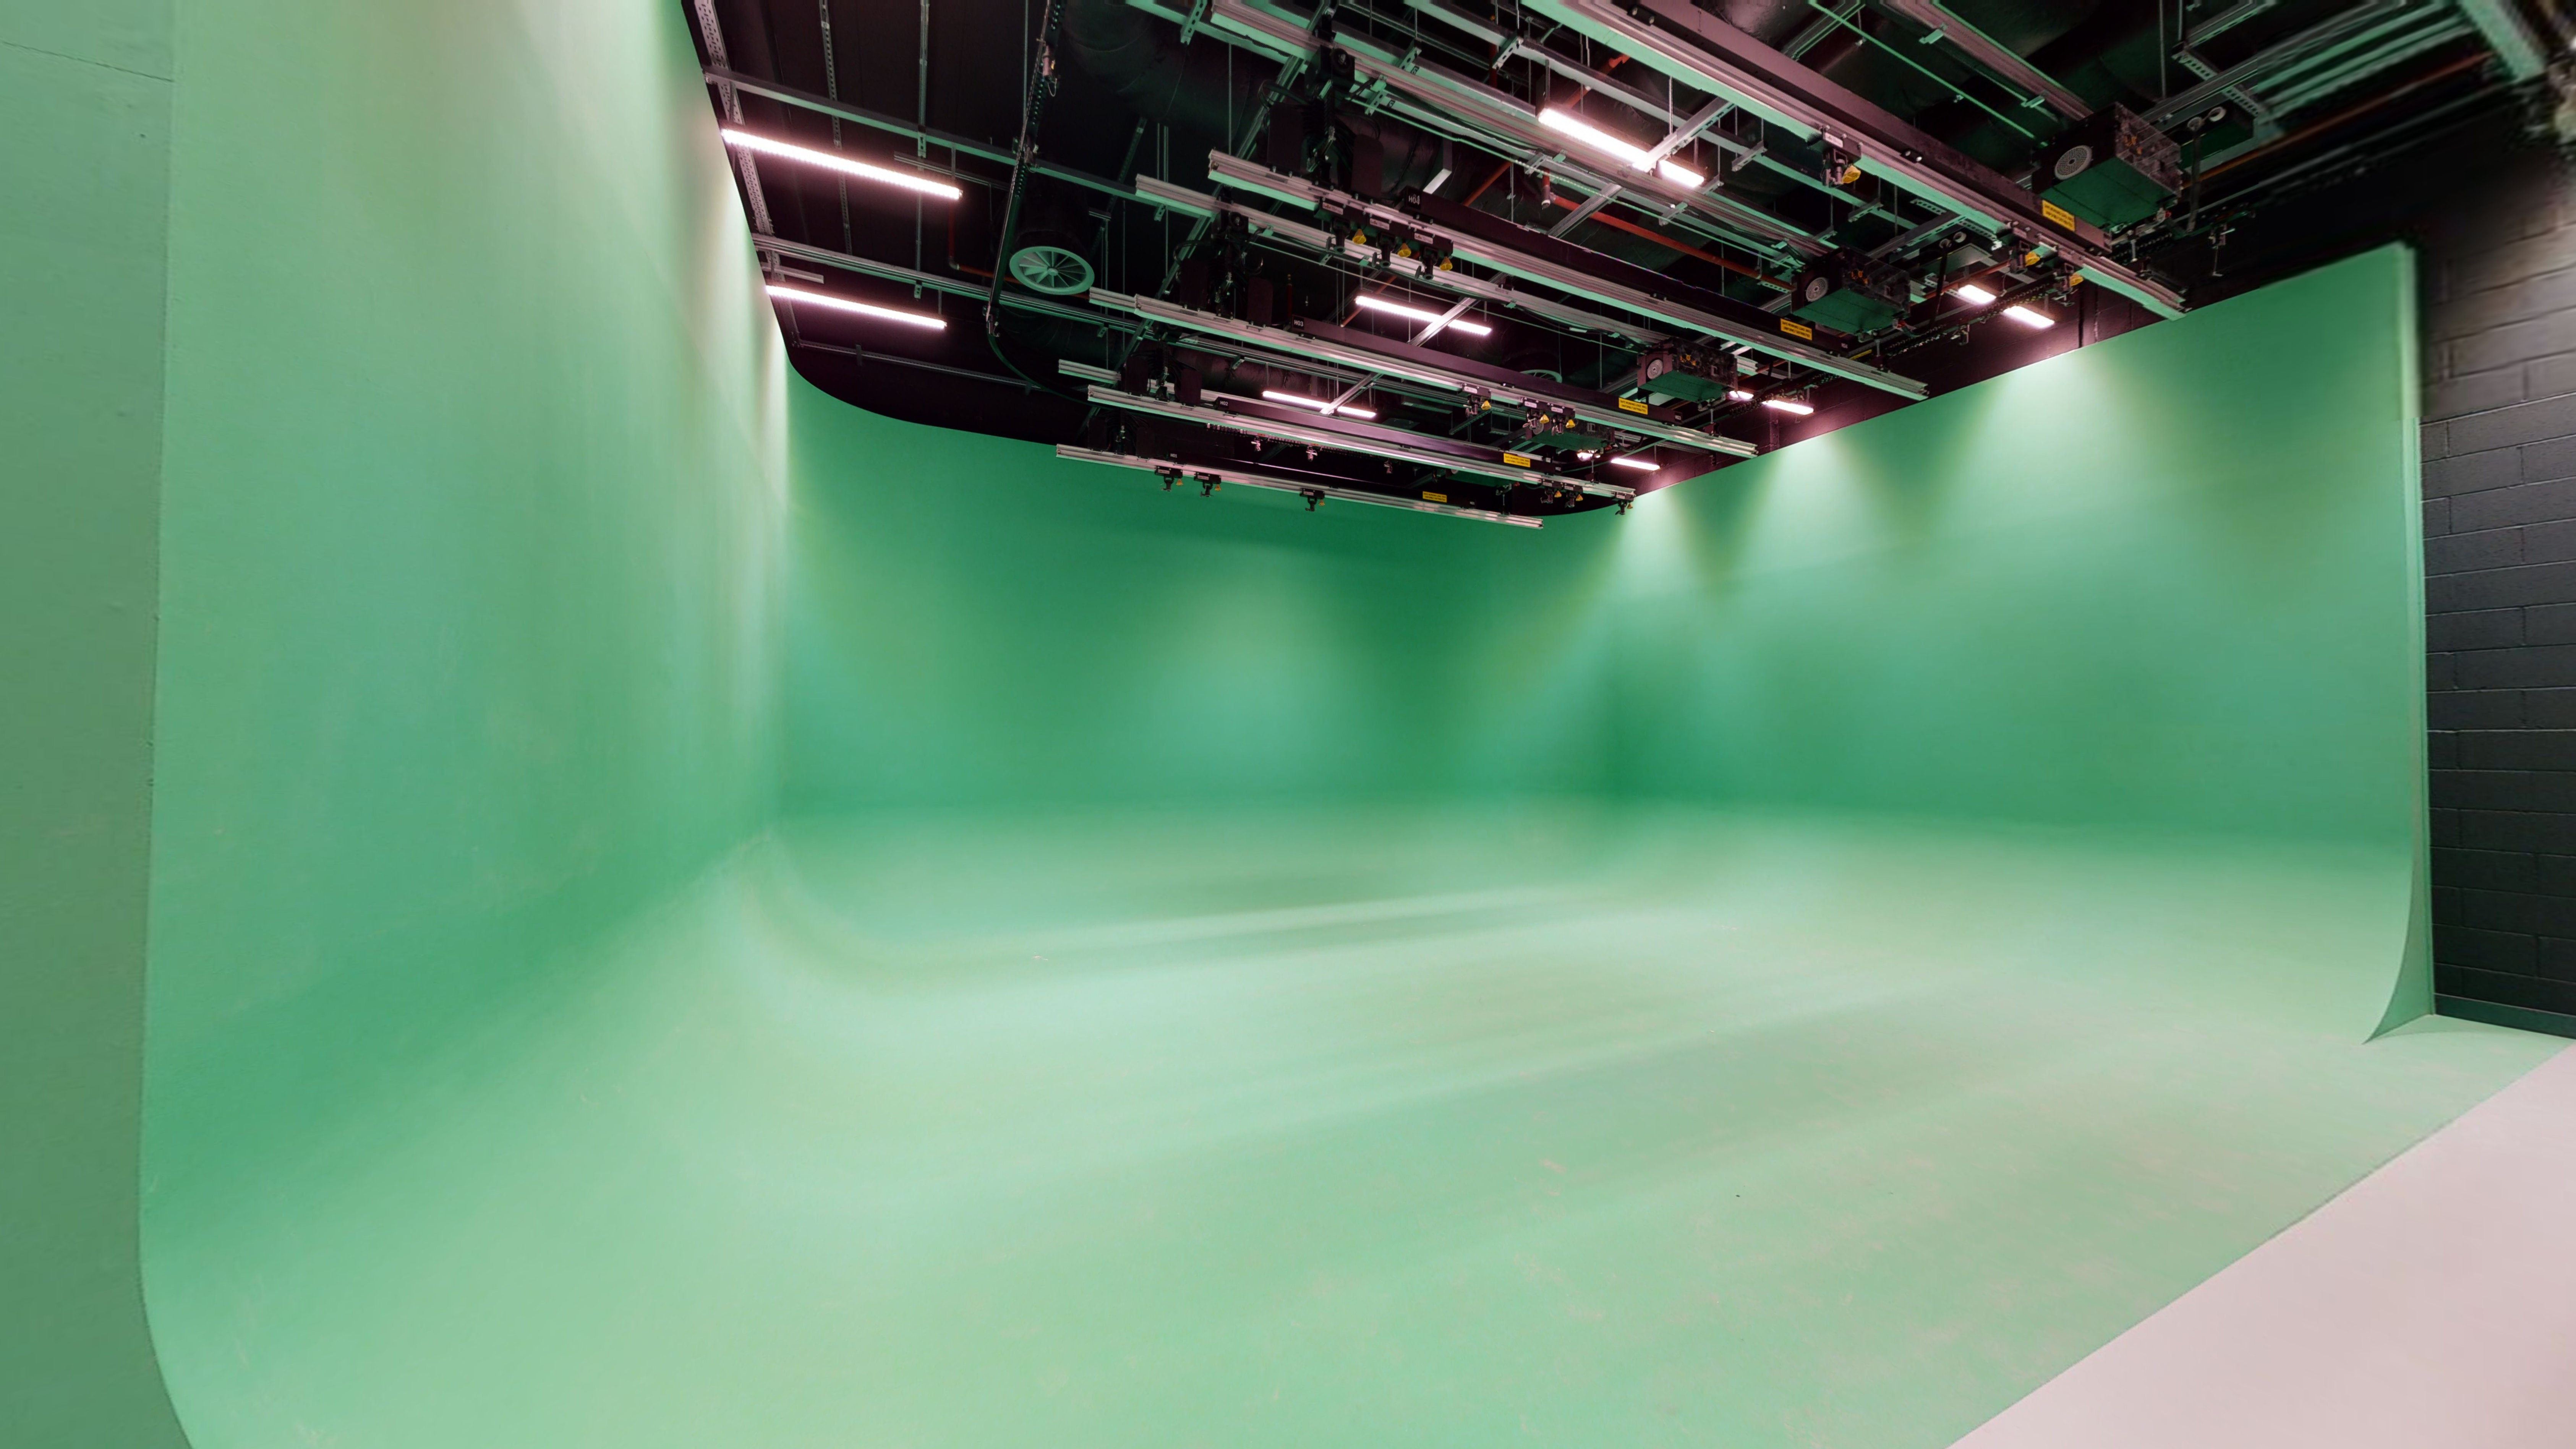 Film studio with a curved sided green screen on the floor and up 3 walls.